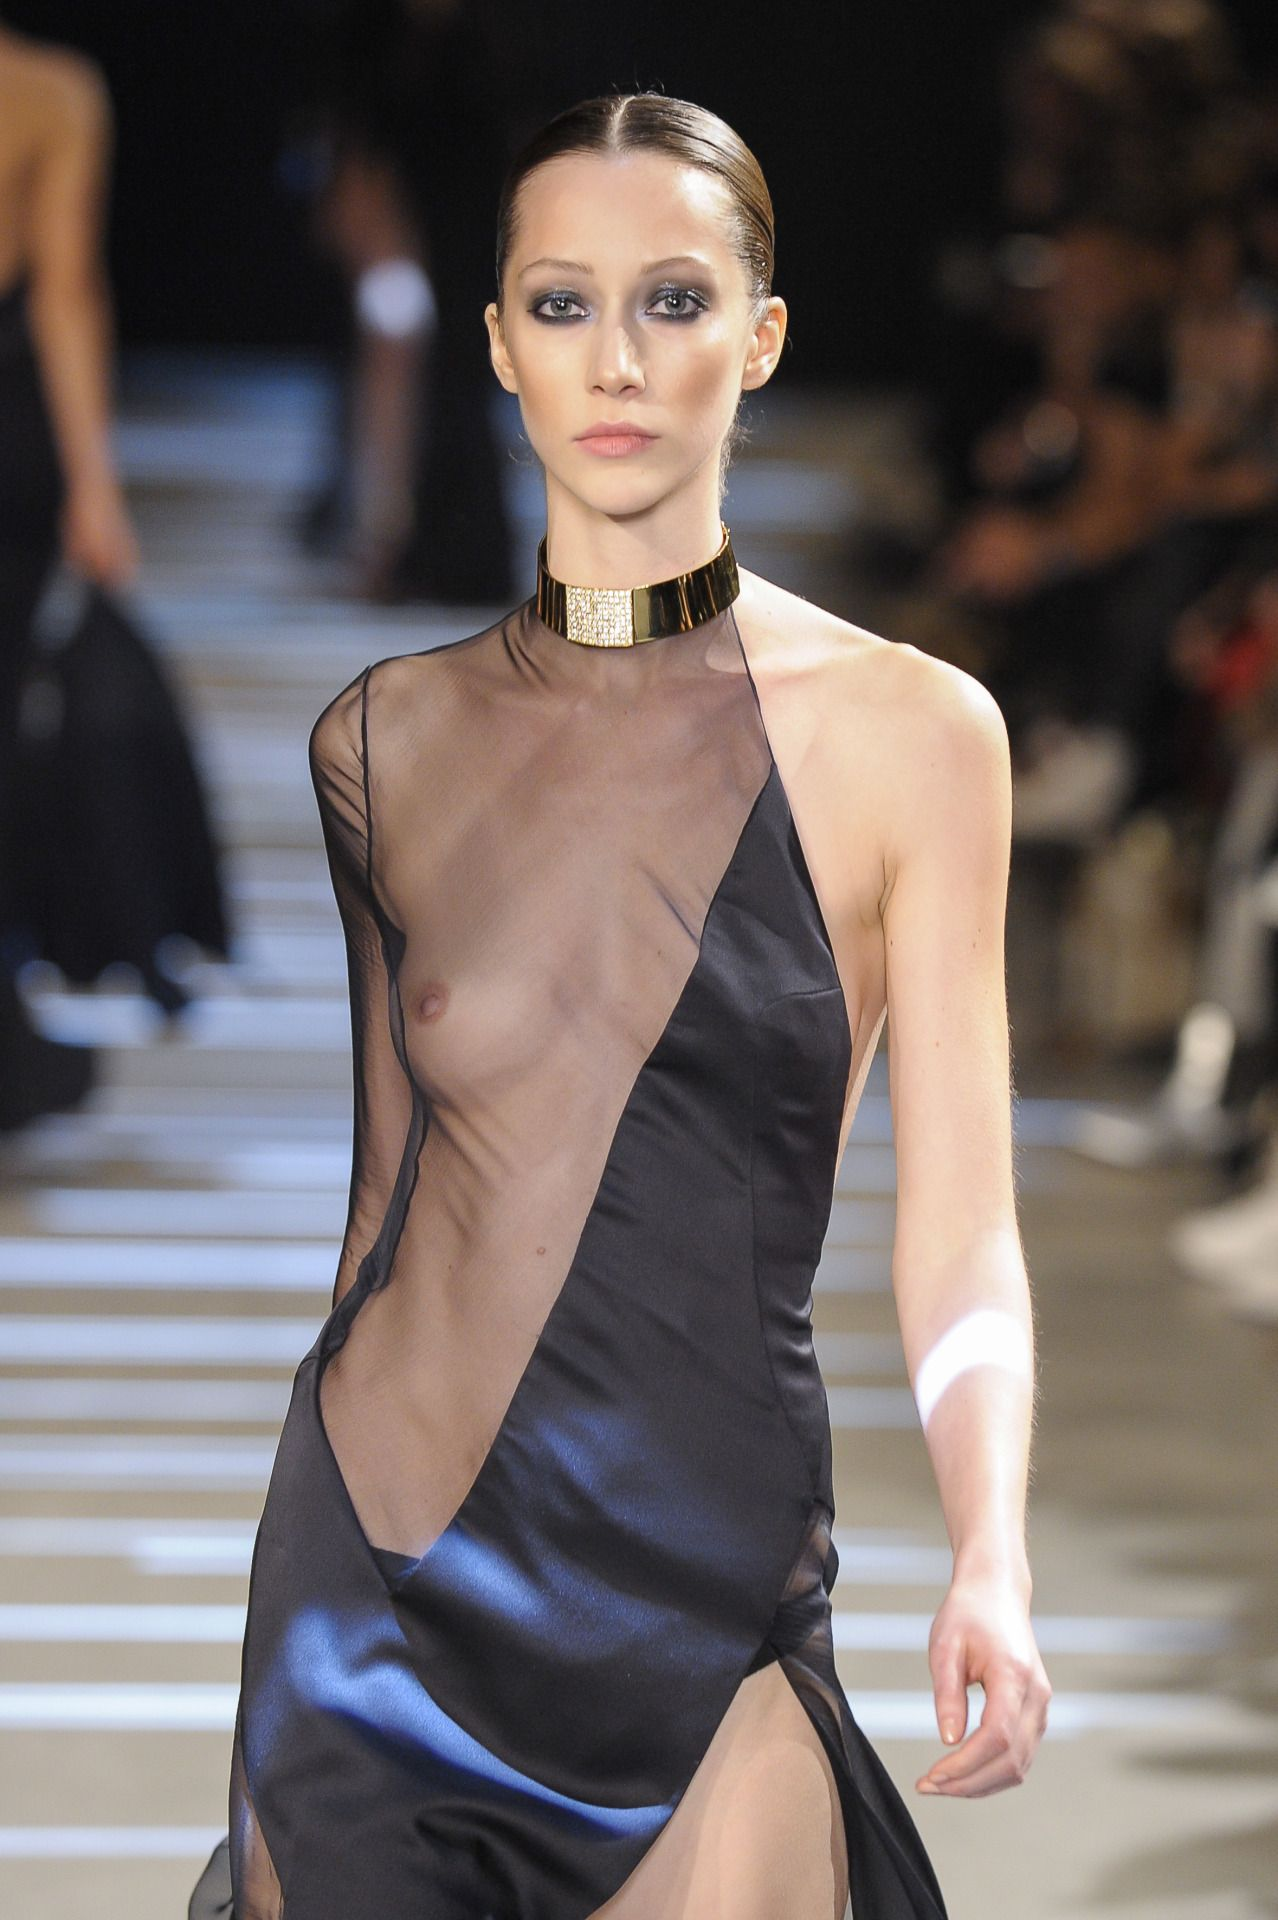 Look - How to sheer wear clothing video